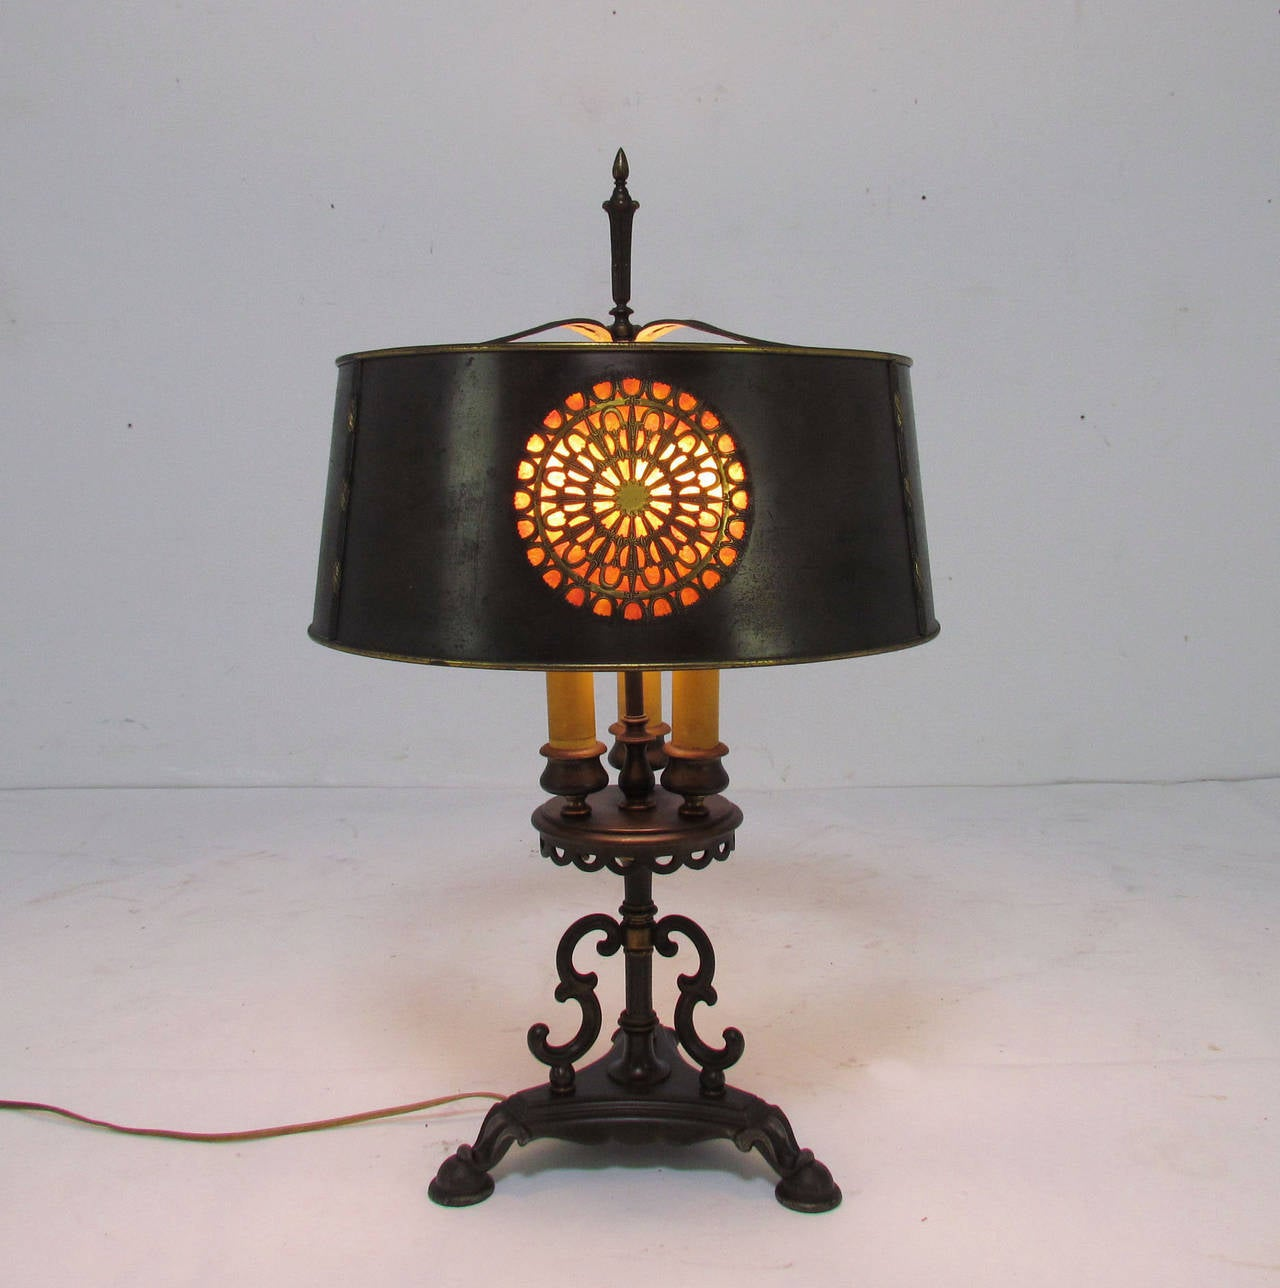 Spanish Colonial Revival Table Lamp by Mutual Sunset For Sale at ...